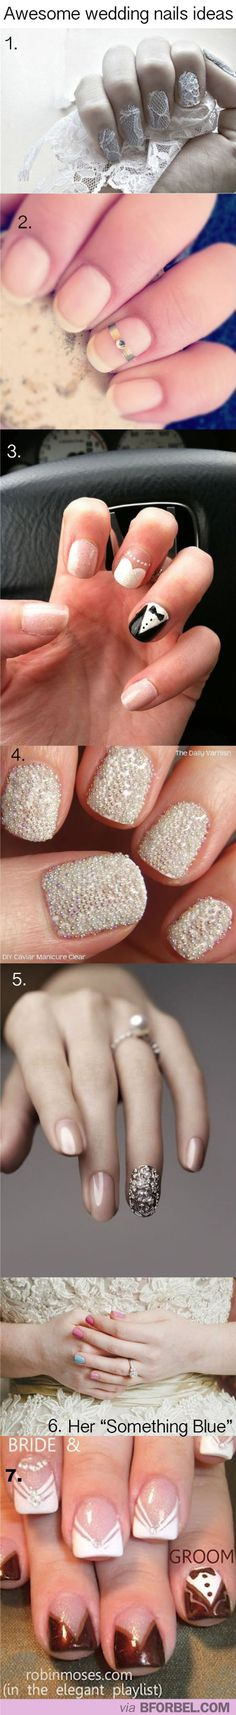 A bunch of Wedding Nails Ideas! So cute! #manicures #cuteNails